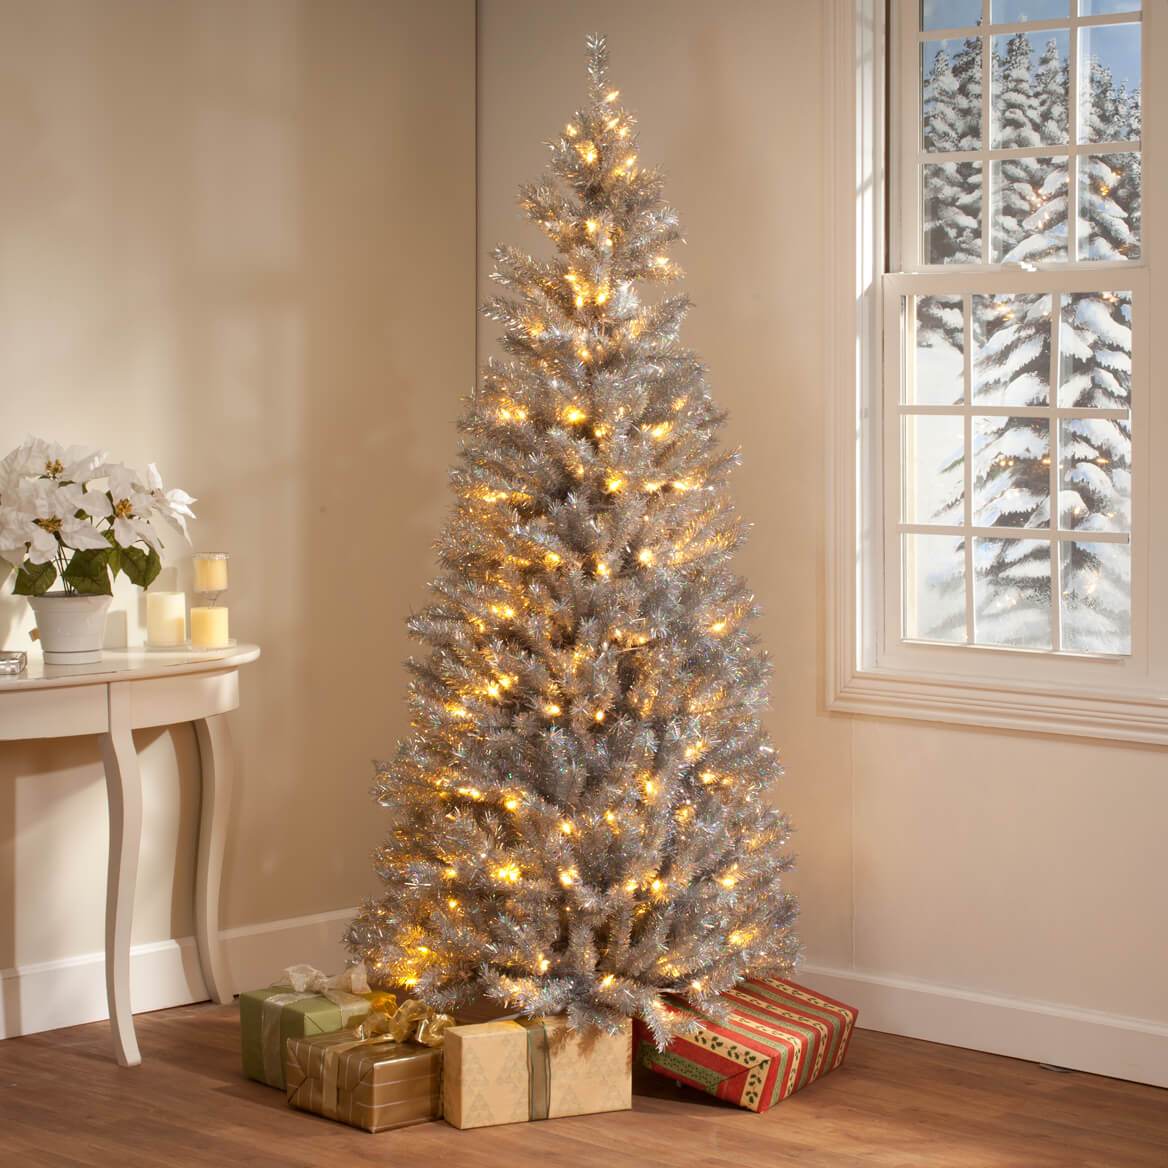 Tinsel Christmas Tree: 6-Foot Silver Tinsel Tree With Lights By Northwoods